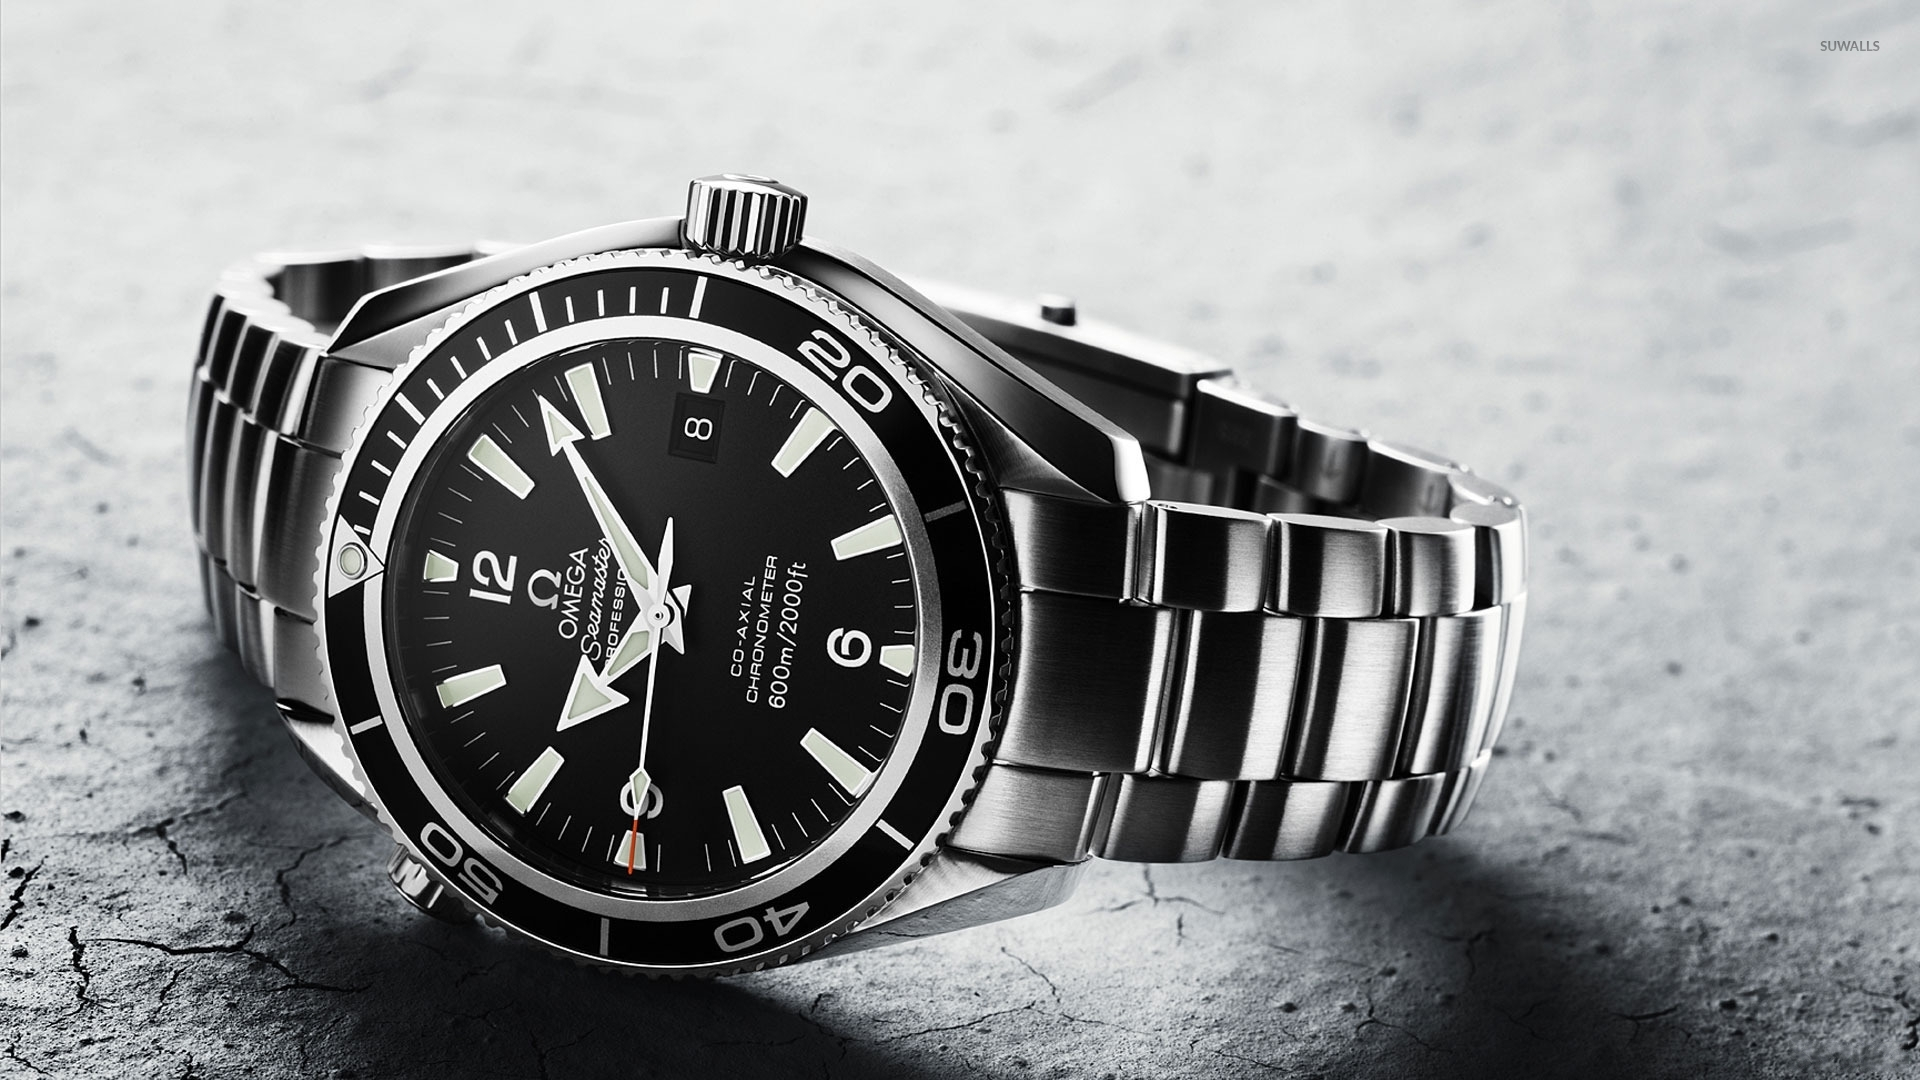 Omega Watch Wallpaper Photography Wallpapers 47827